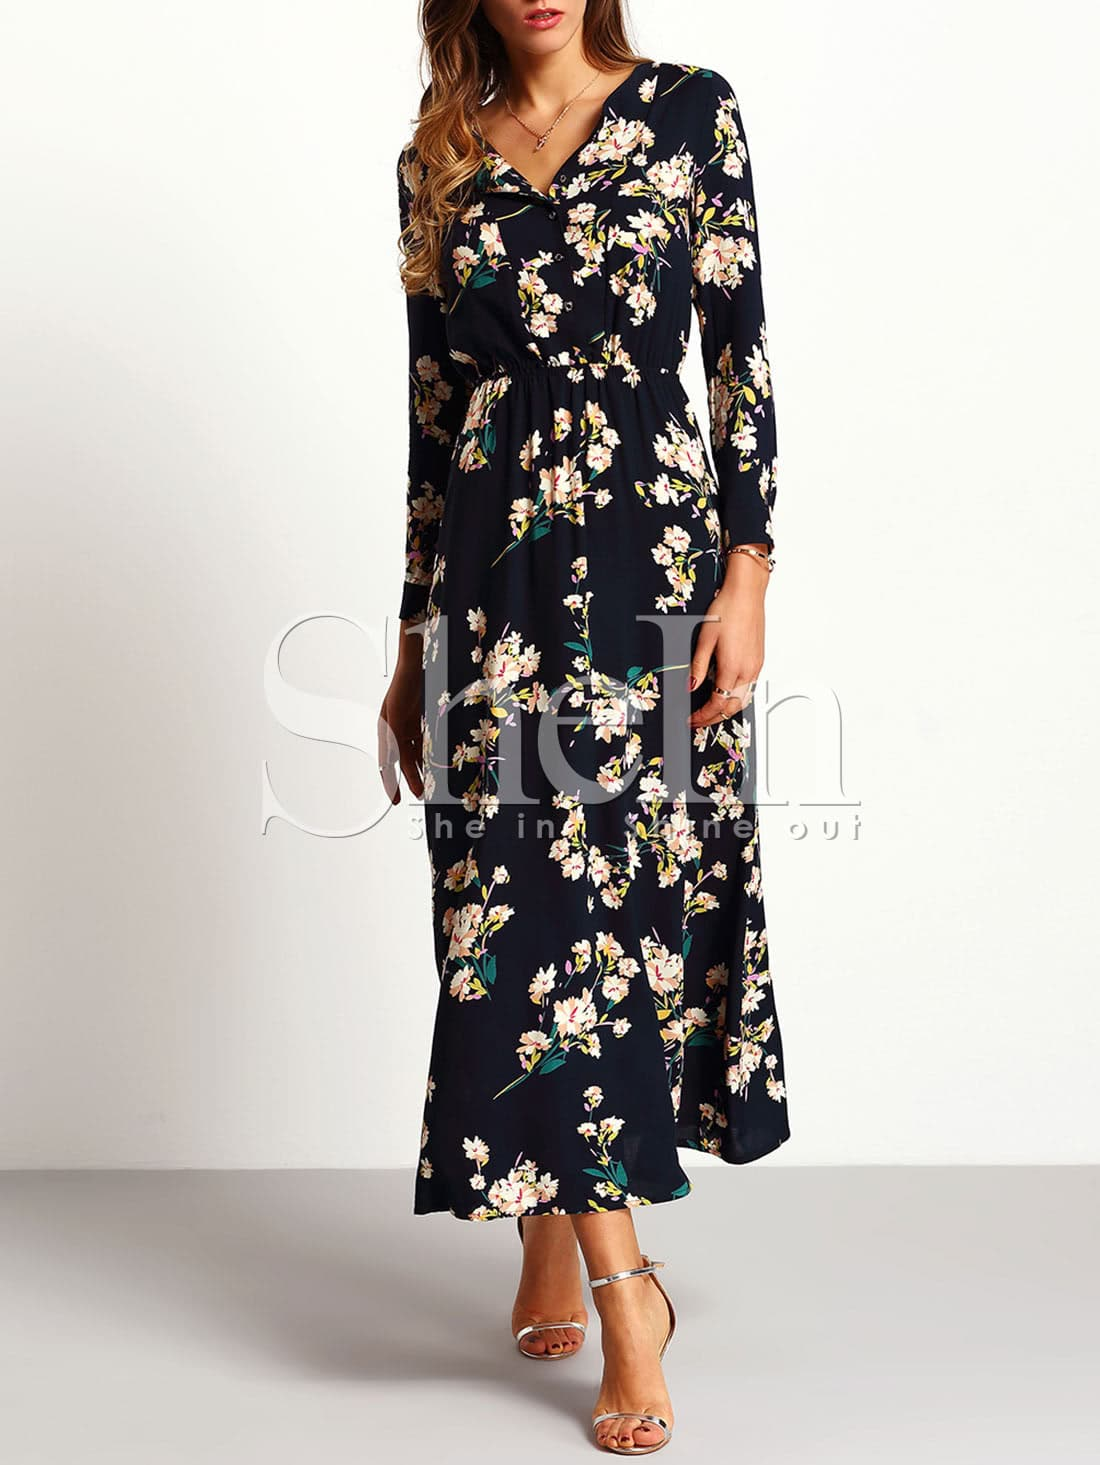 Navy Long Sleeve Floral Maxi DressNavy Long Sleeve Floral Maxi Dress<br><br>color: Navy<br>size: L,M,S,XL